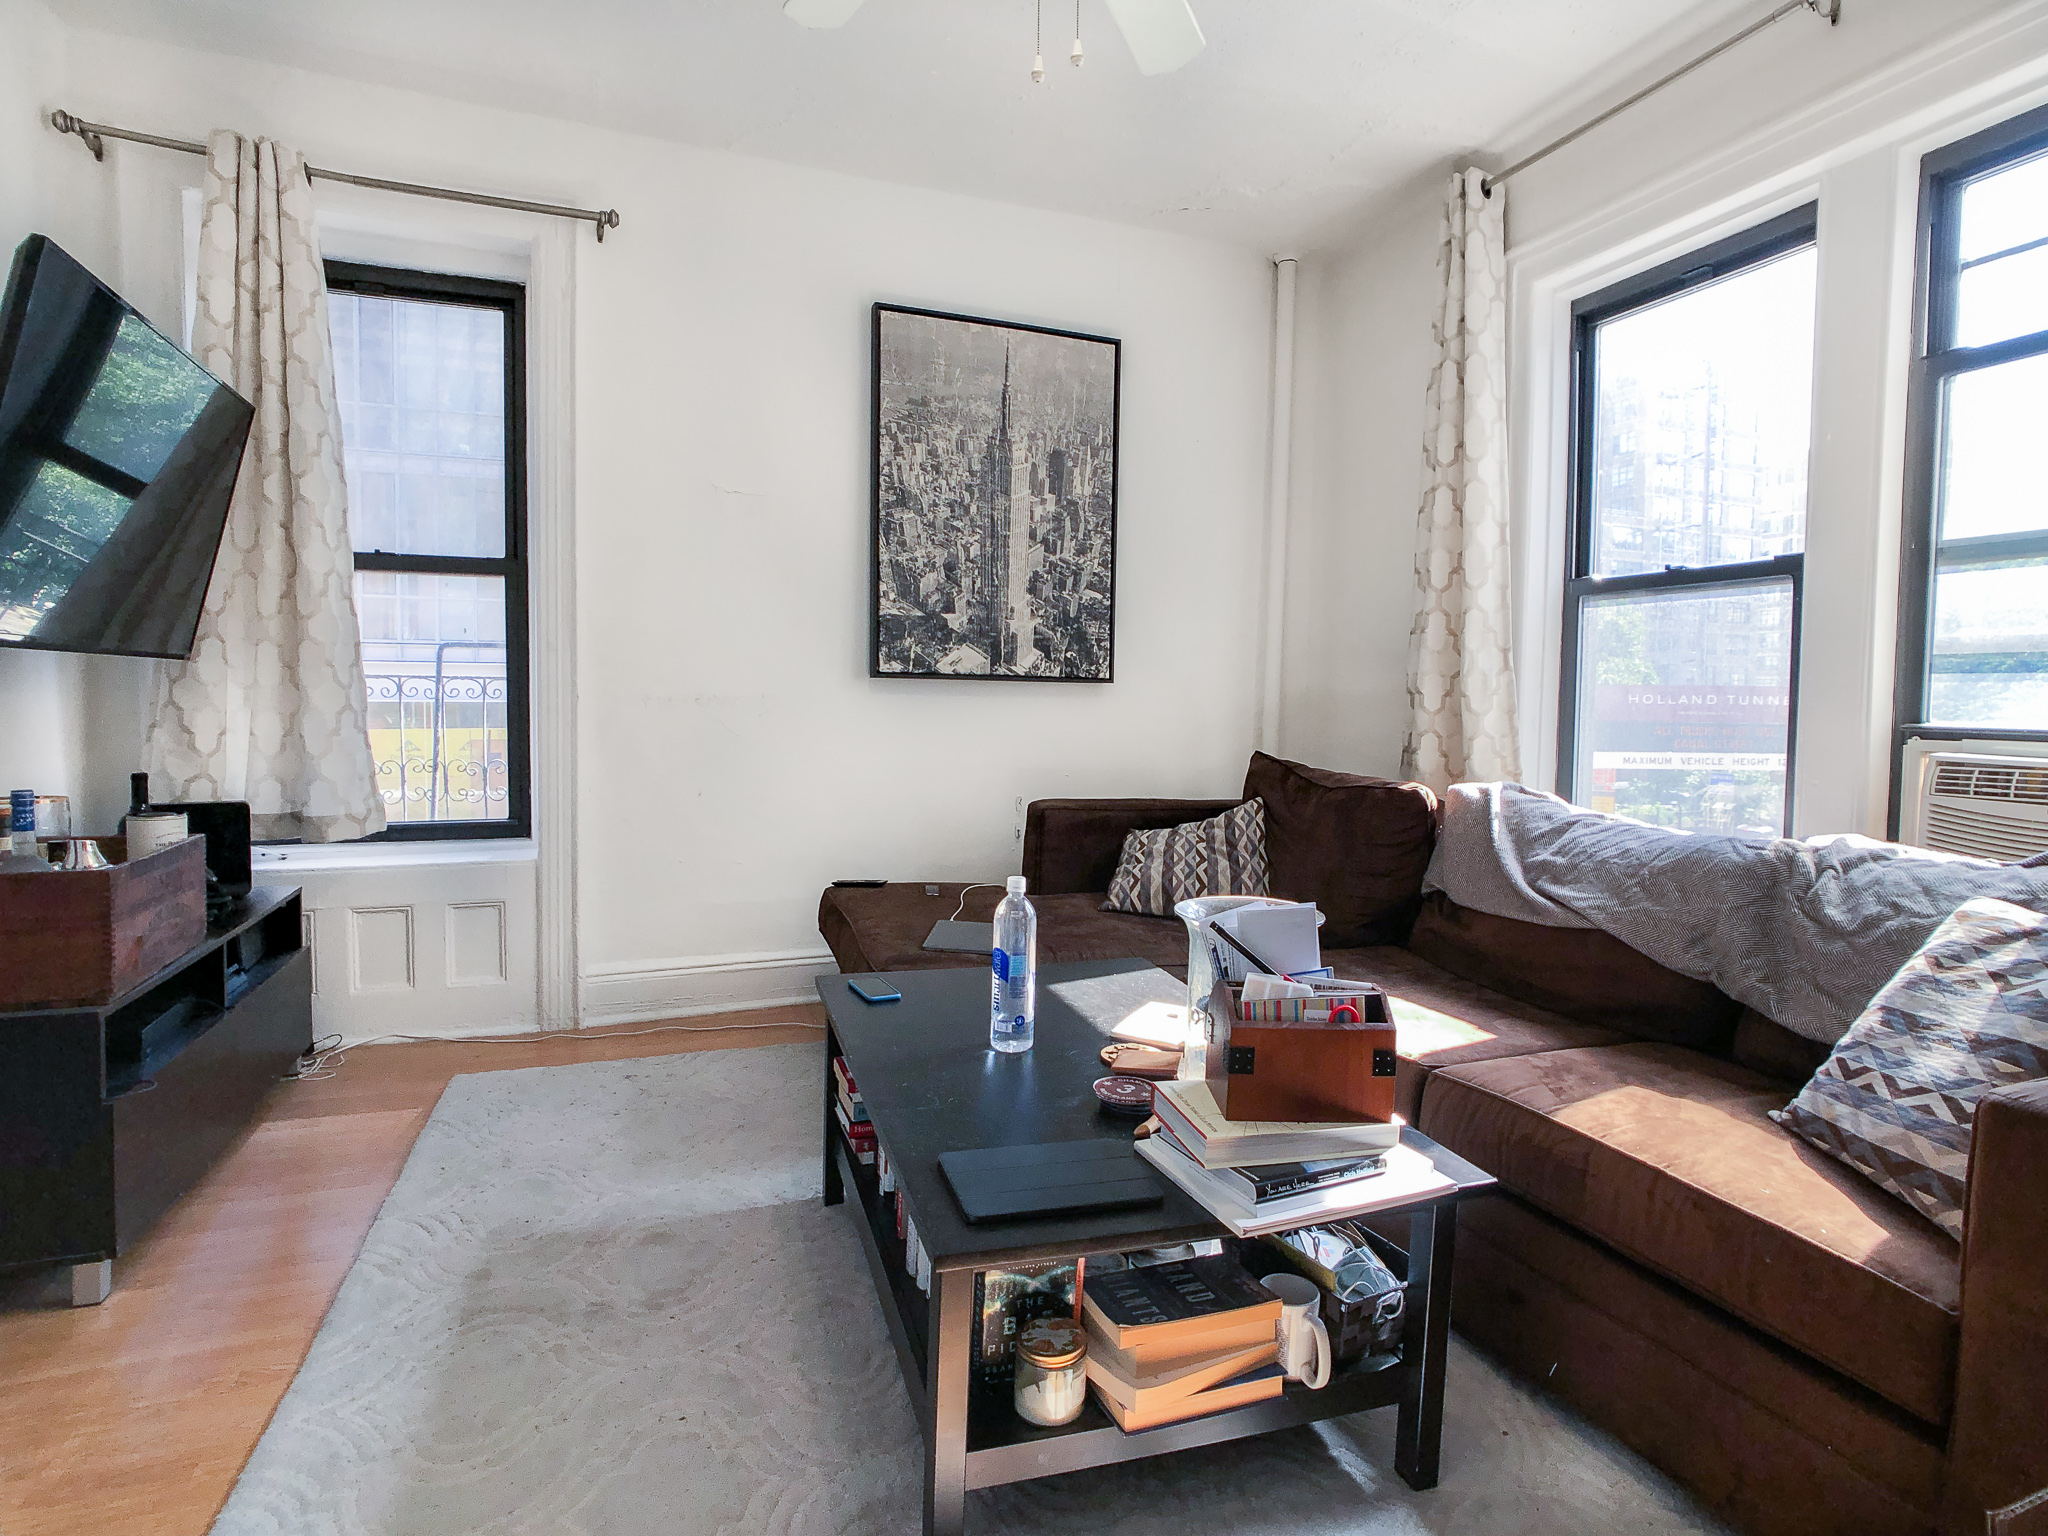 558 Broome St #5 - Welcome to your new home that is full on natural light, large living as well as bedroom area, and separate eat in kitchen! The apartment is filled with light, hardwood floors throughout and offering a great layout! Located in a charming walk up building in prime Soho! Close to subway stations, cafes and restaurants! Rent: $2,800 /monthTerms: 12 - 12 MonthsAvailable: July 7th, 2019